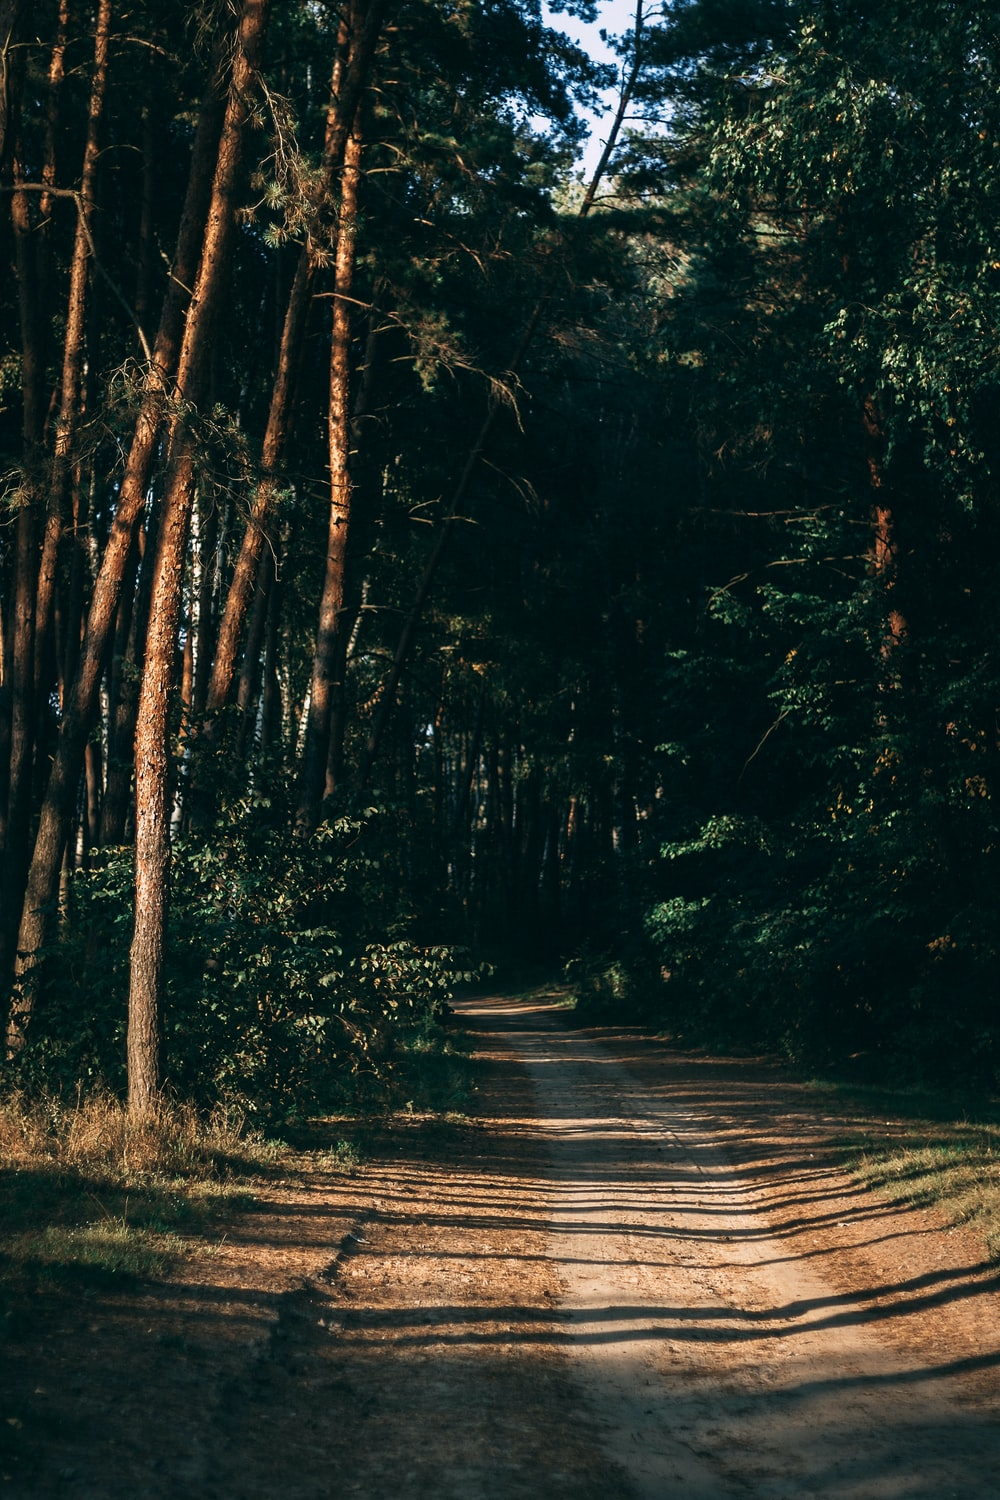 dirt road surrounded by trees during daytme